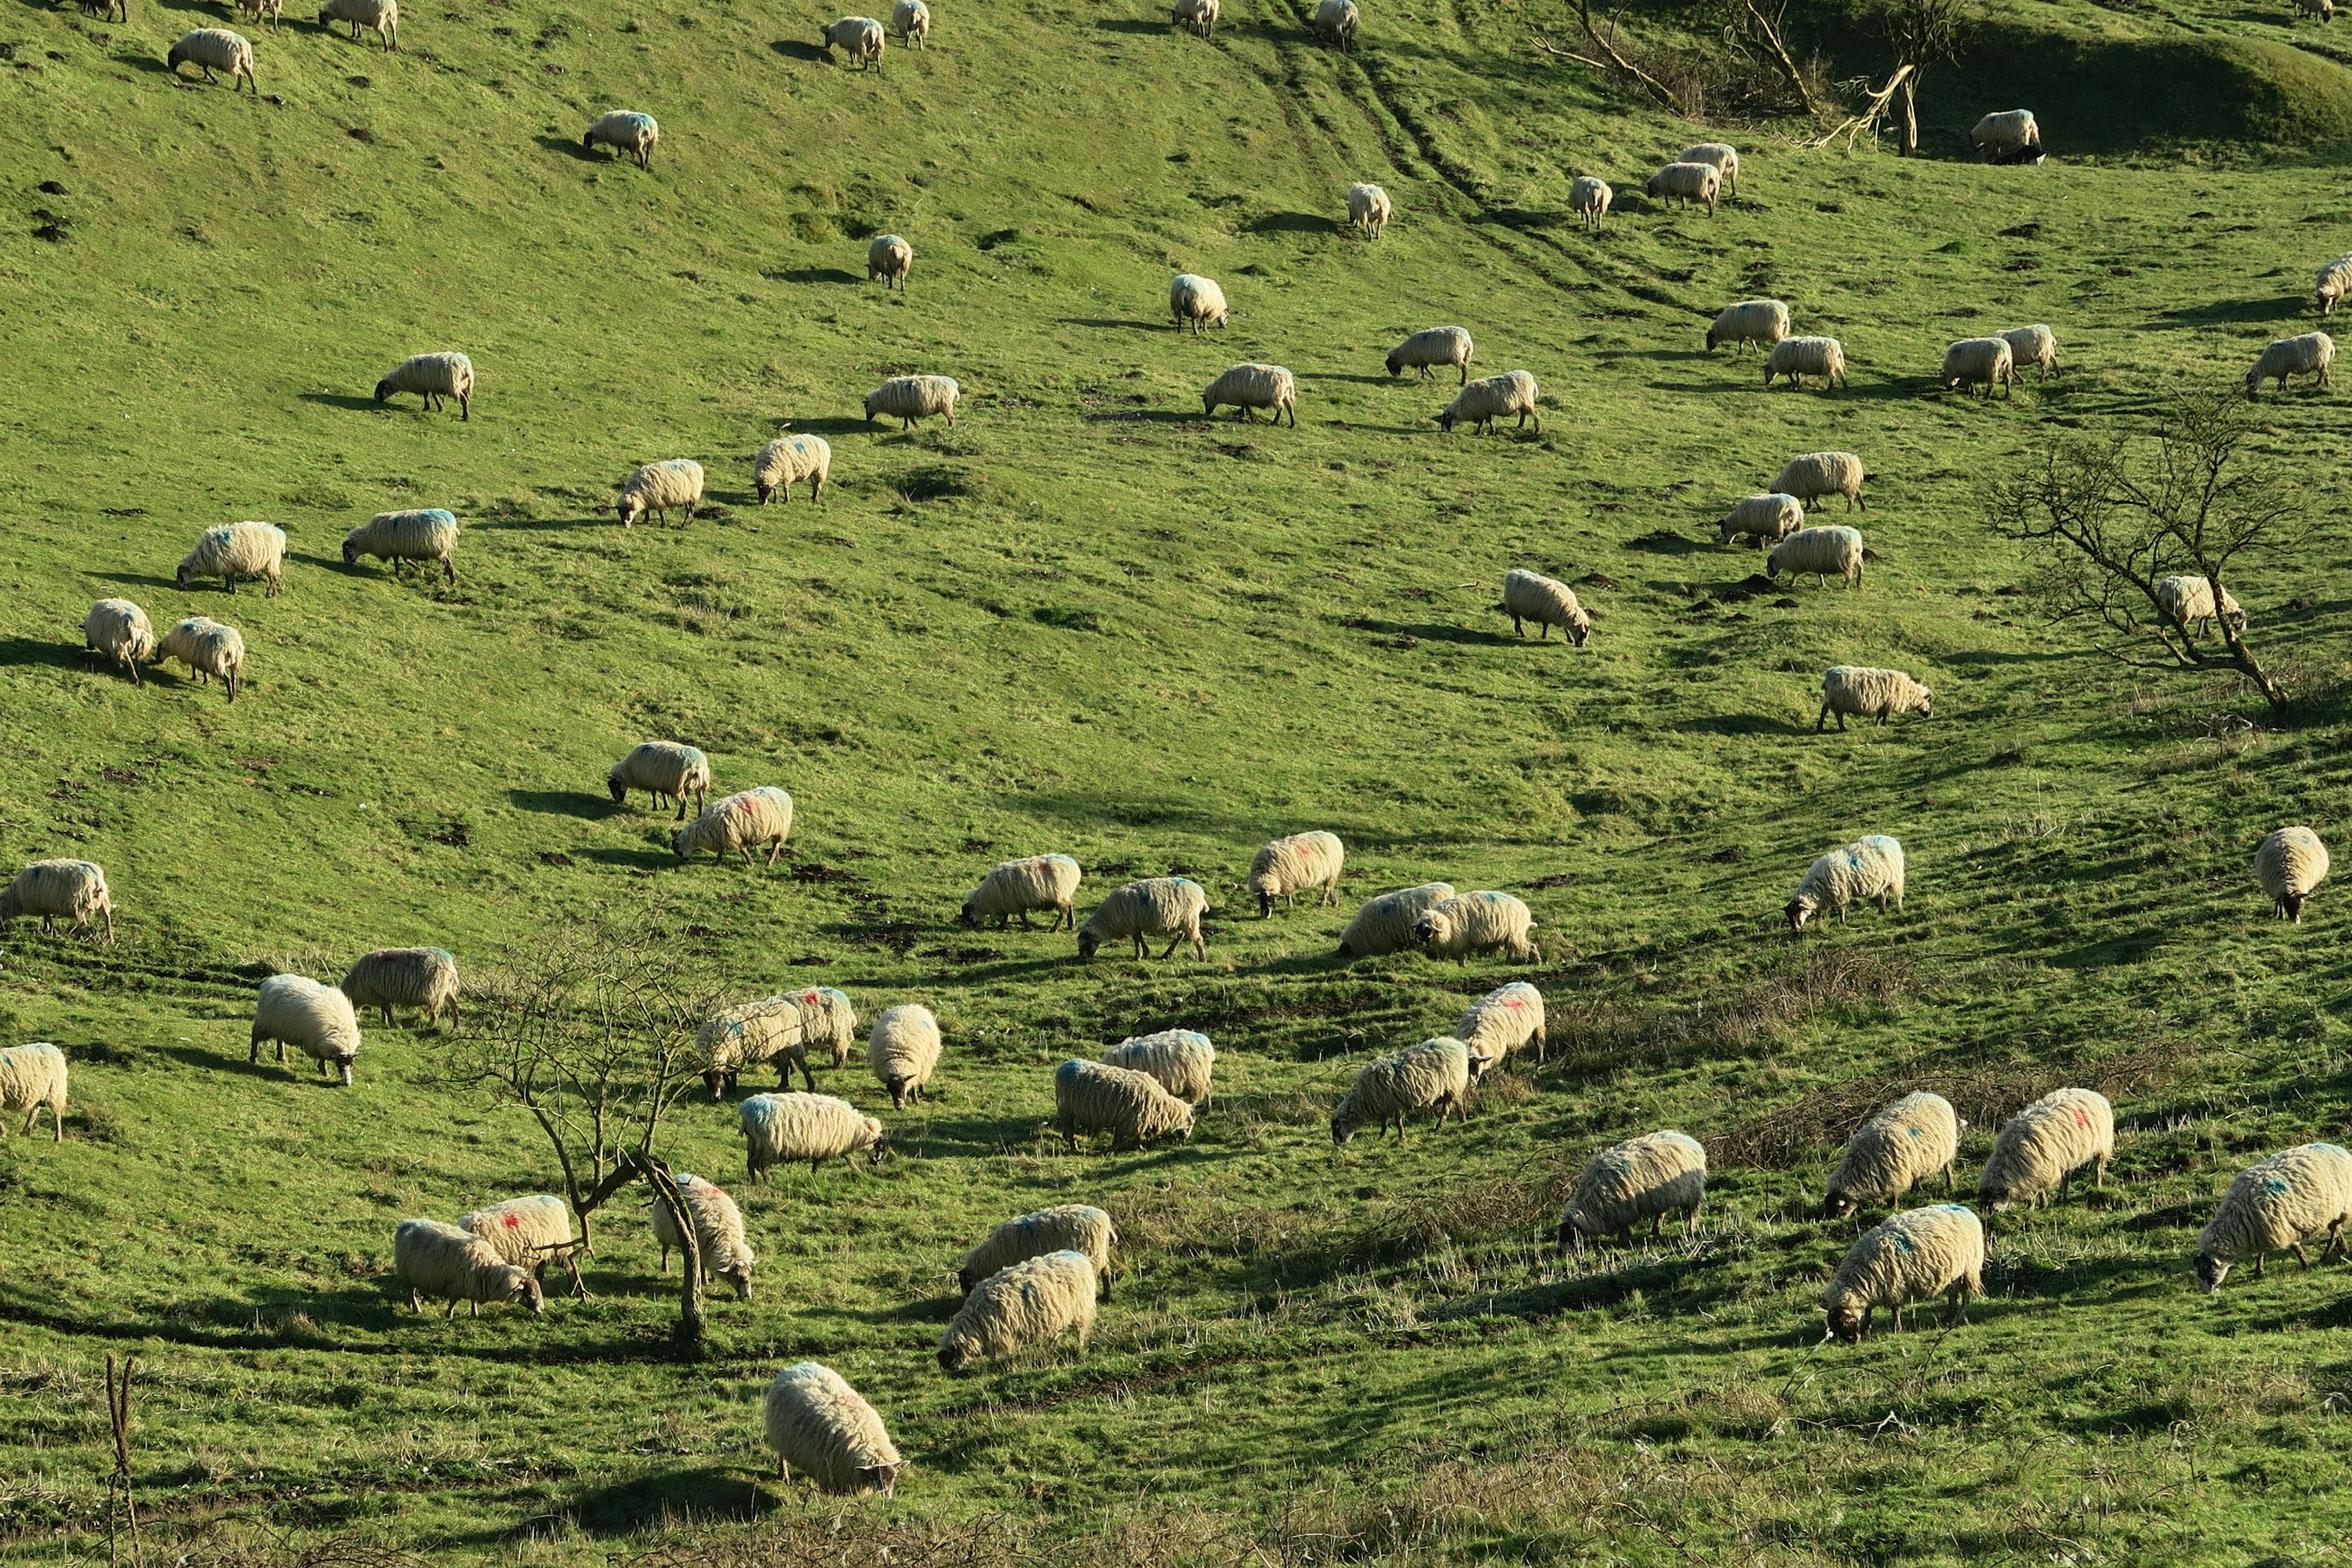 sheeps scattered on green grass field